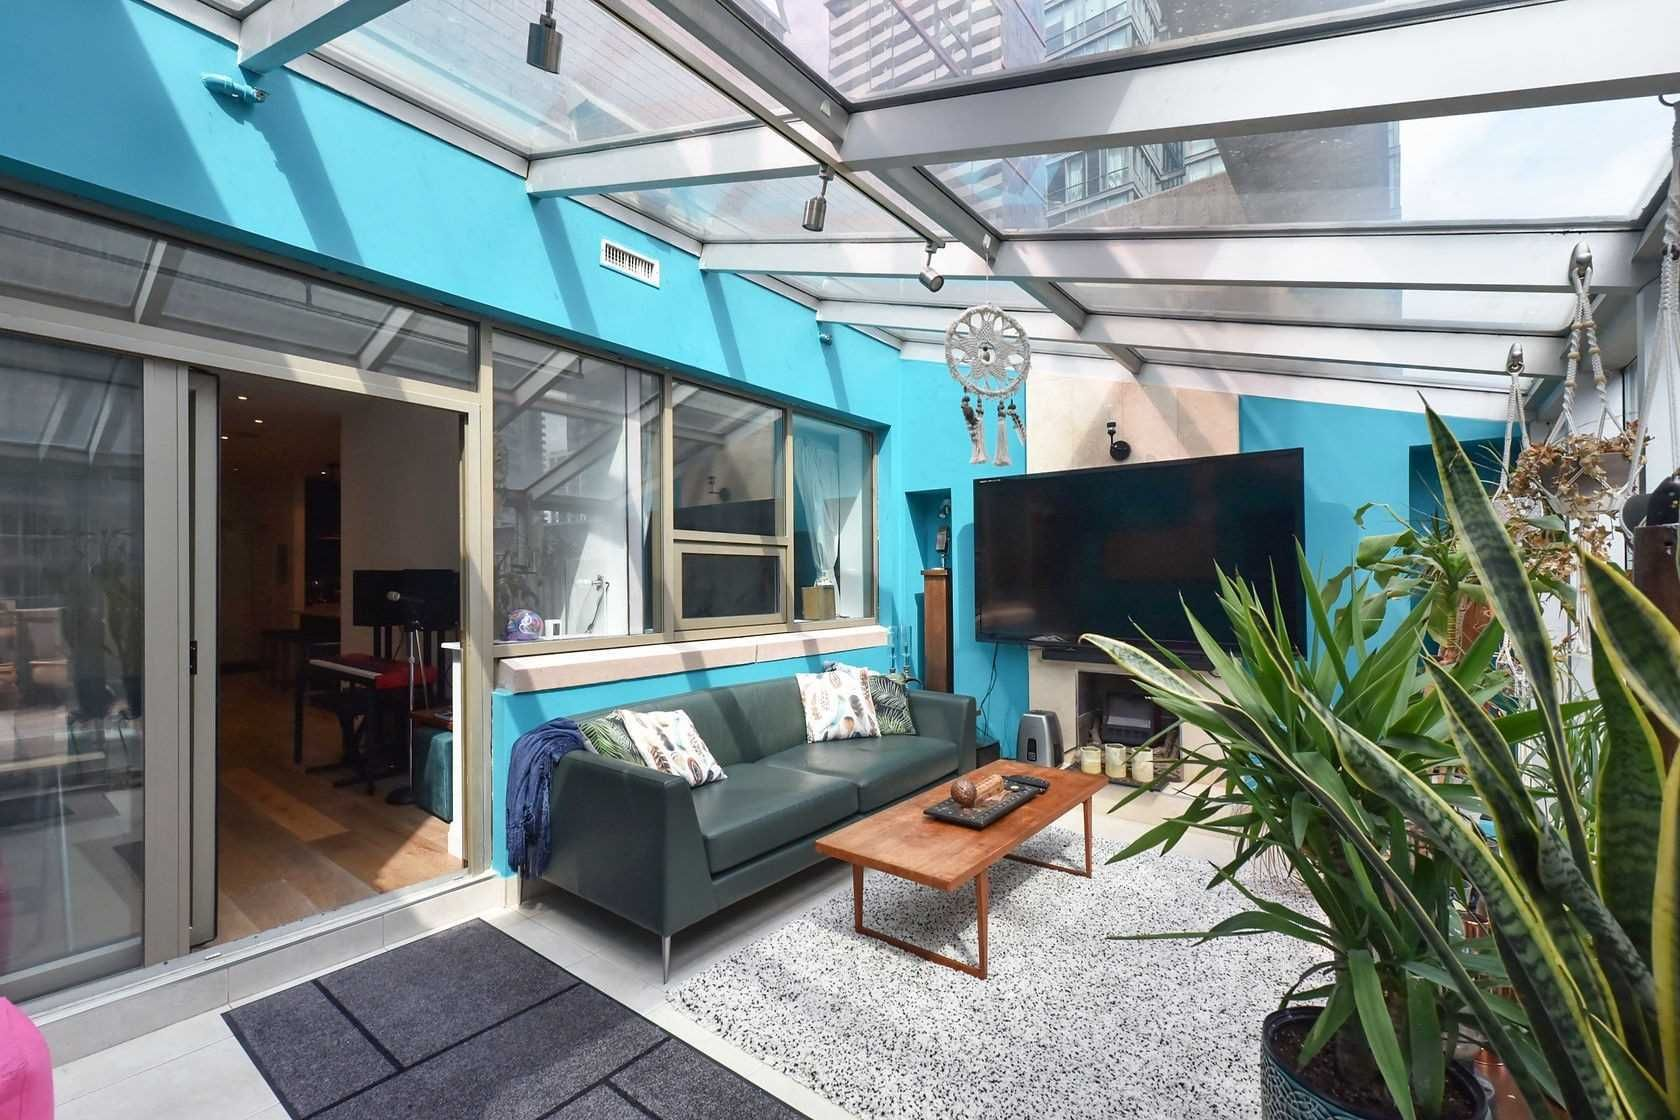 393 King St W, unit 403 for sale in Toronto - image #2